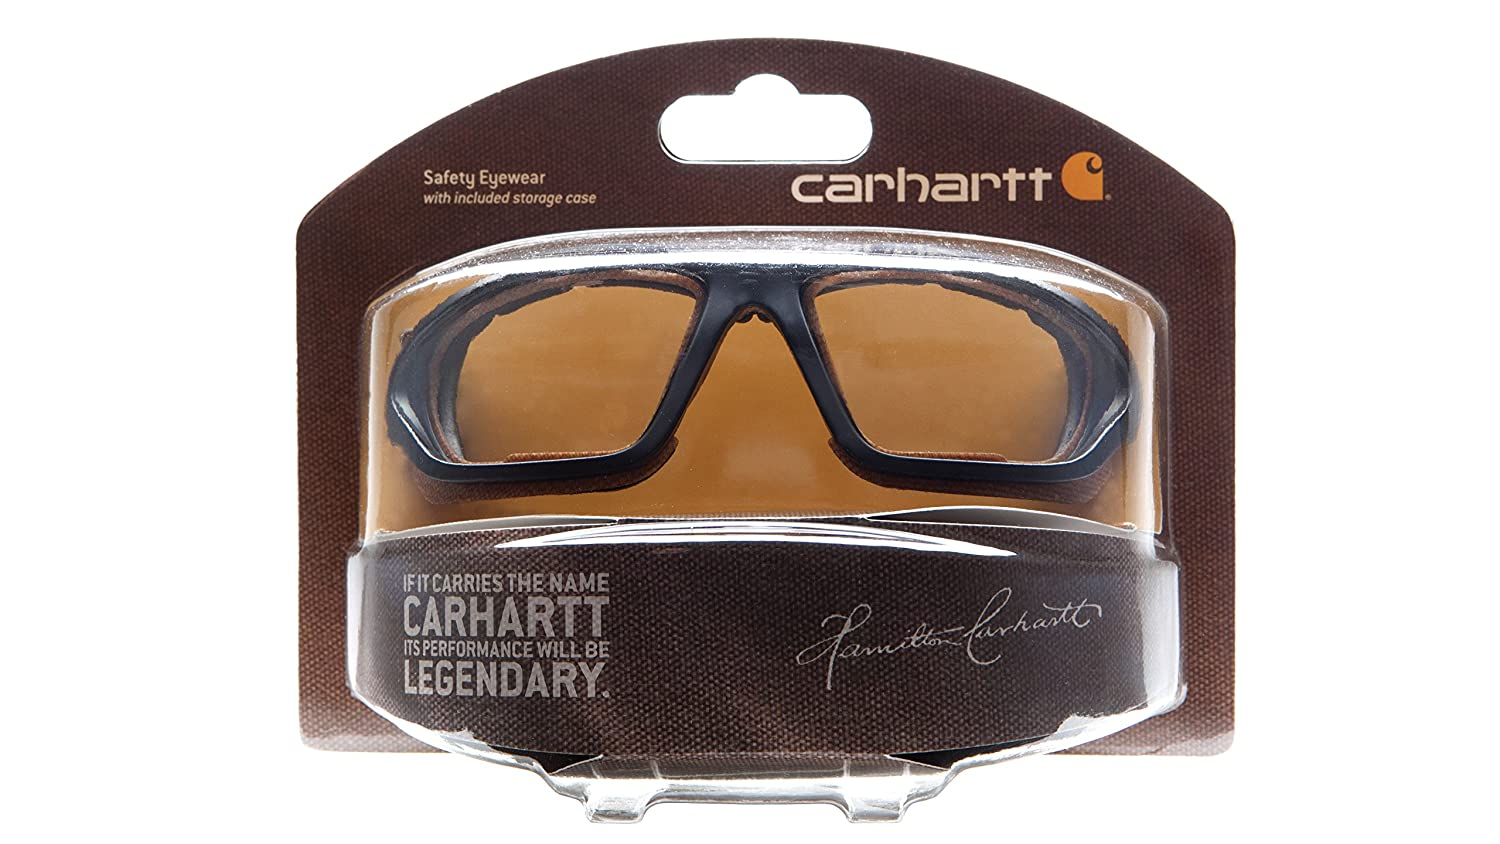 b463ddf5e6a Amazon.com  Carhartt Carthage Safety Eyewear with Vented Foam Carriage